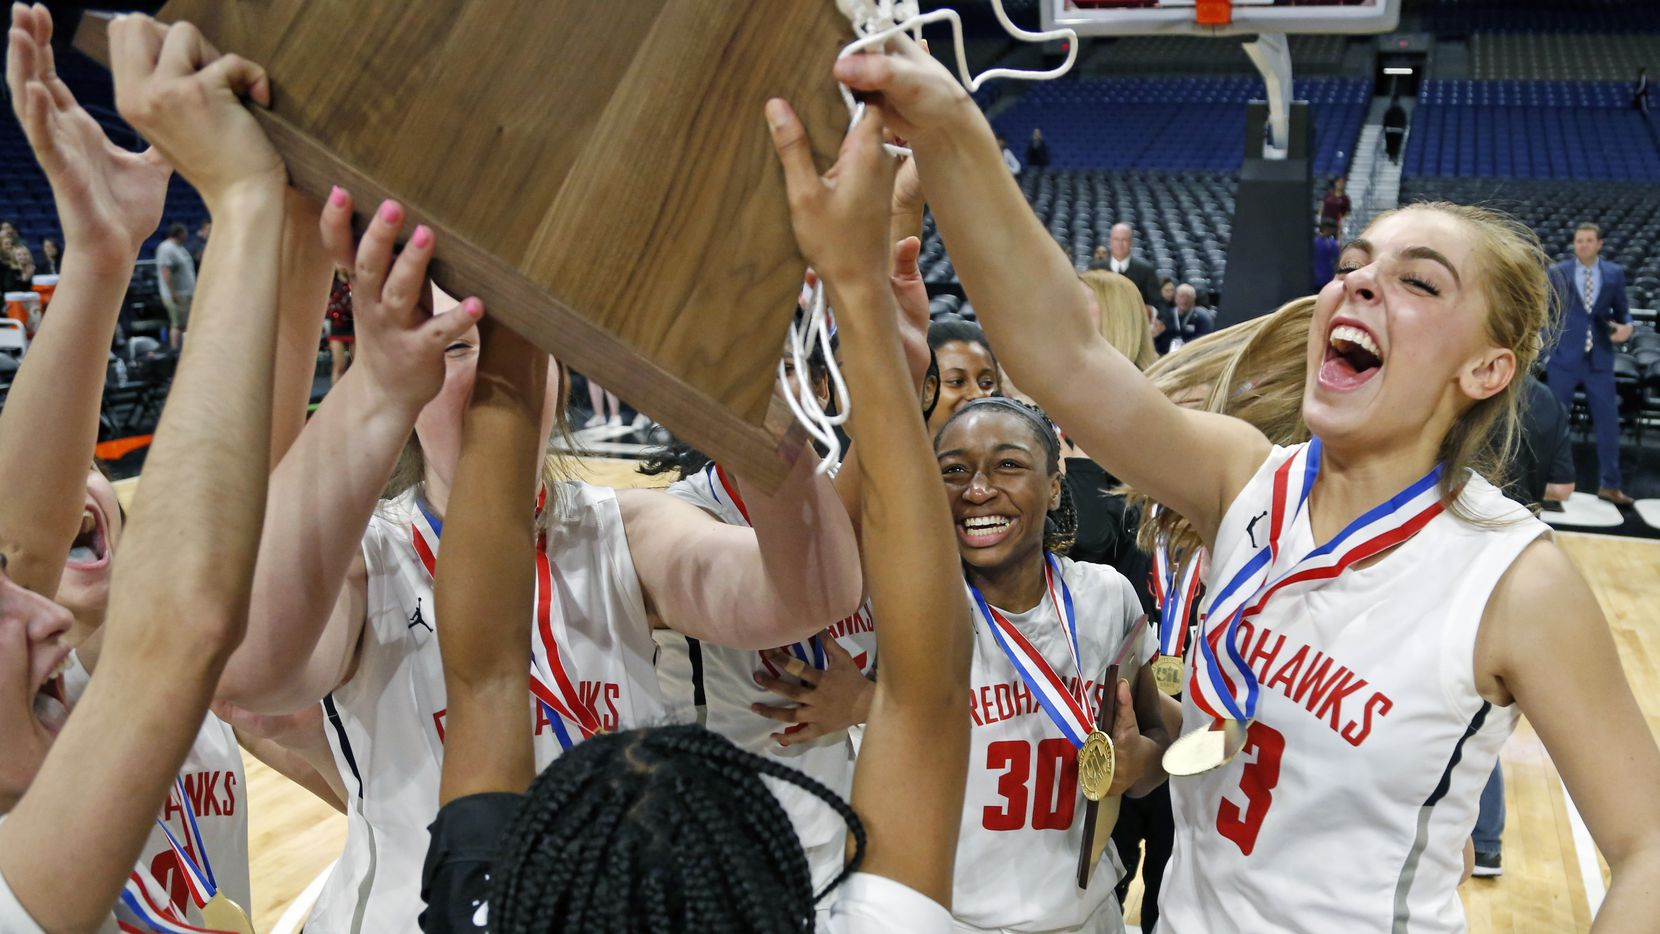 Frisco Liberty's Lily Ziemkiewicz (3) and Jazzy Owens-Barnet (30) celebrate with their teammates after beating San Antonio Veterans Memorial 35-26 in the Class 5A state championship game on March 7, 2020 at the Alamodome in San Antonio.